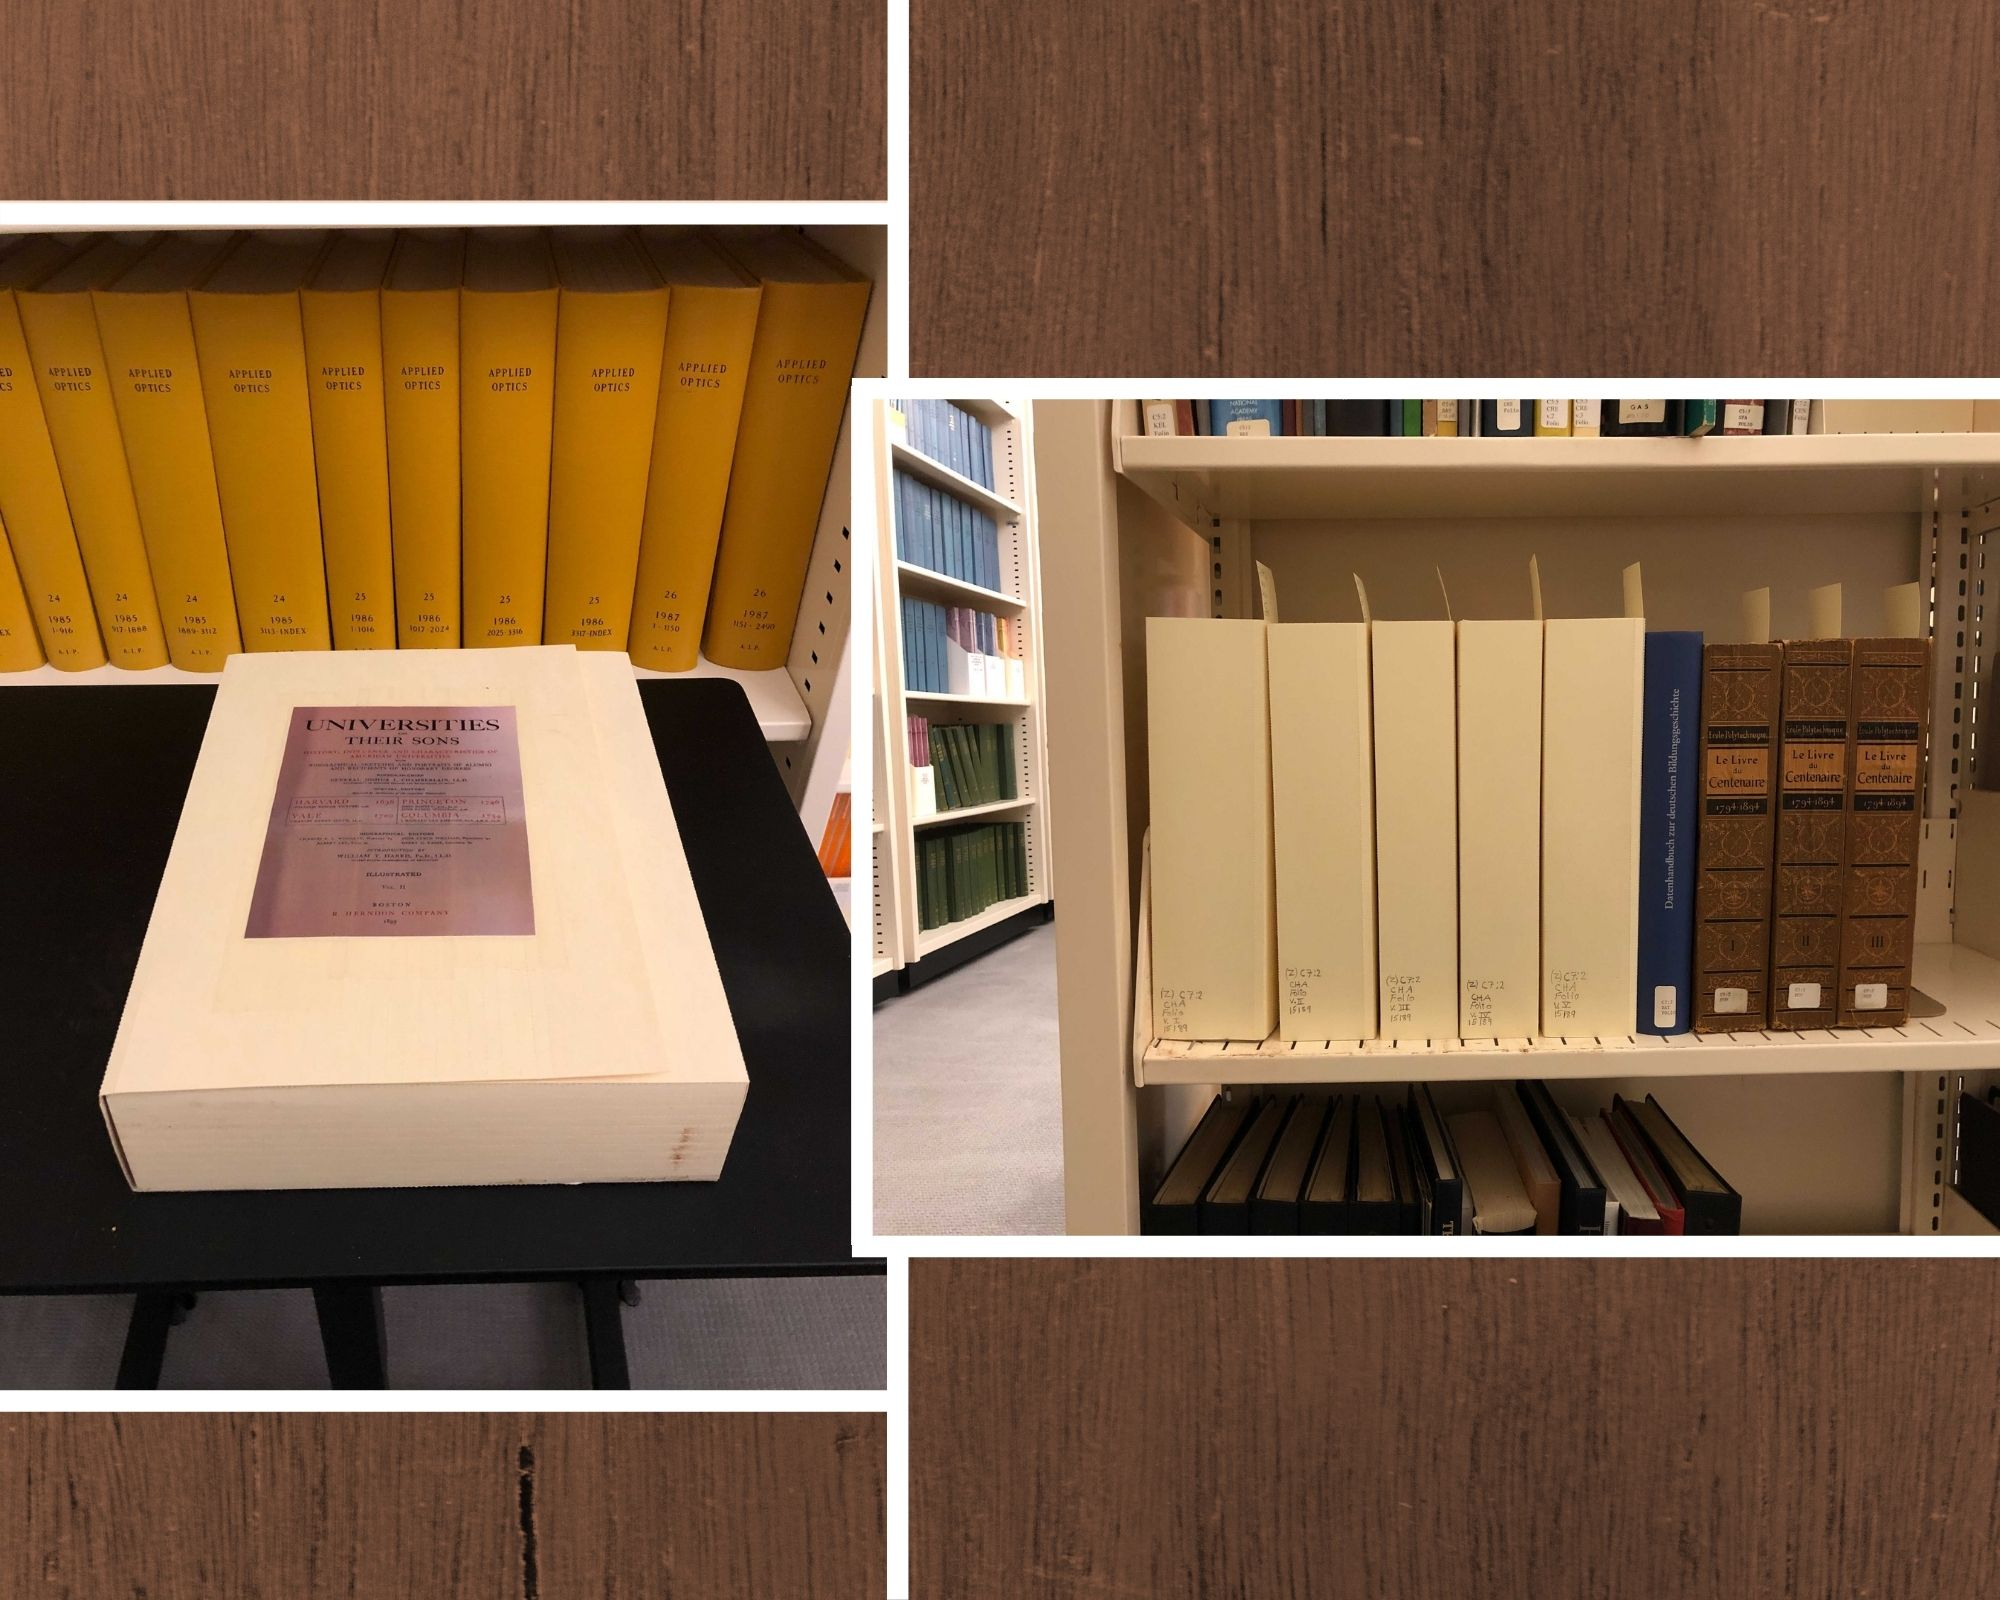 Left: Example of a single 4-flap enclosure. Right: Upright view of multiple 4-flap enclosures in the stacks.